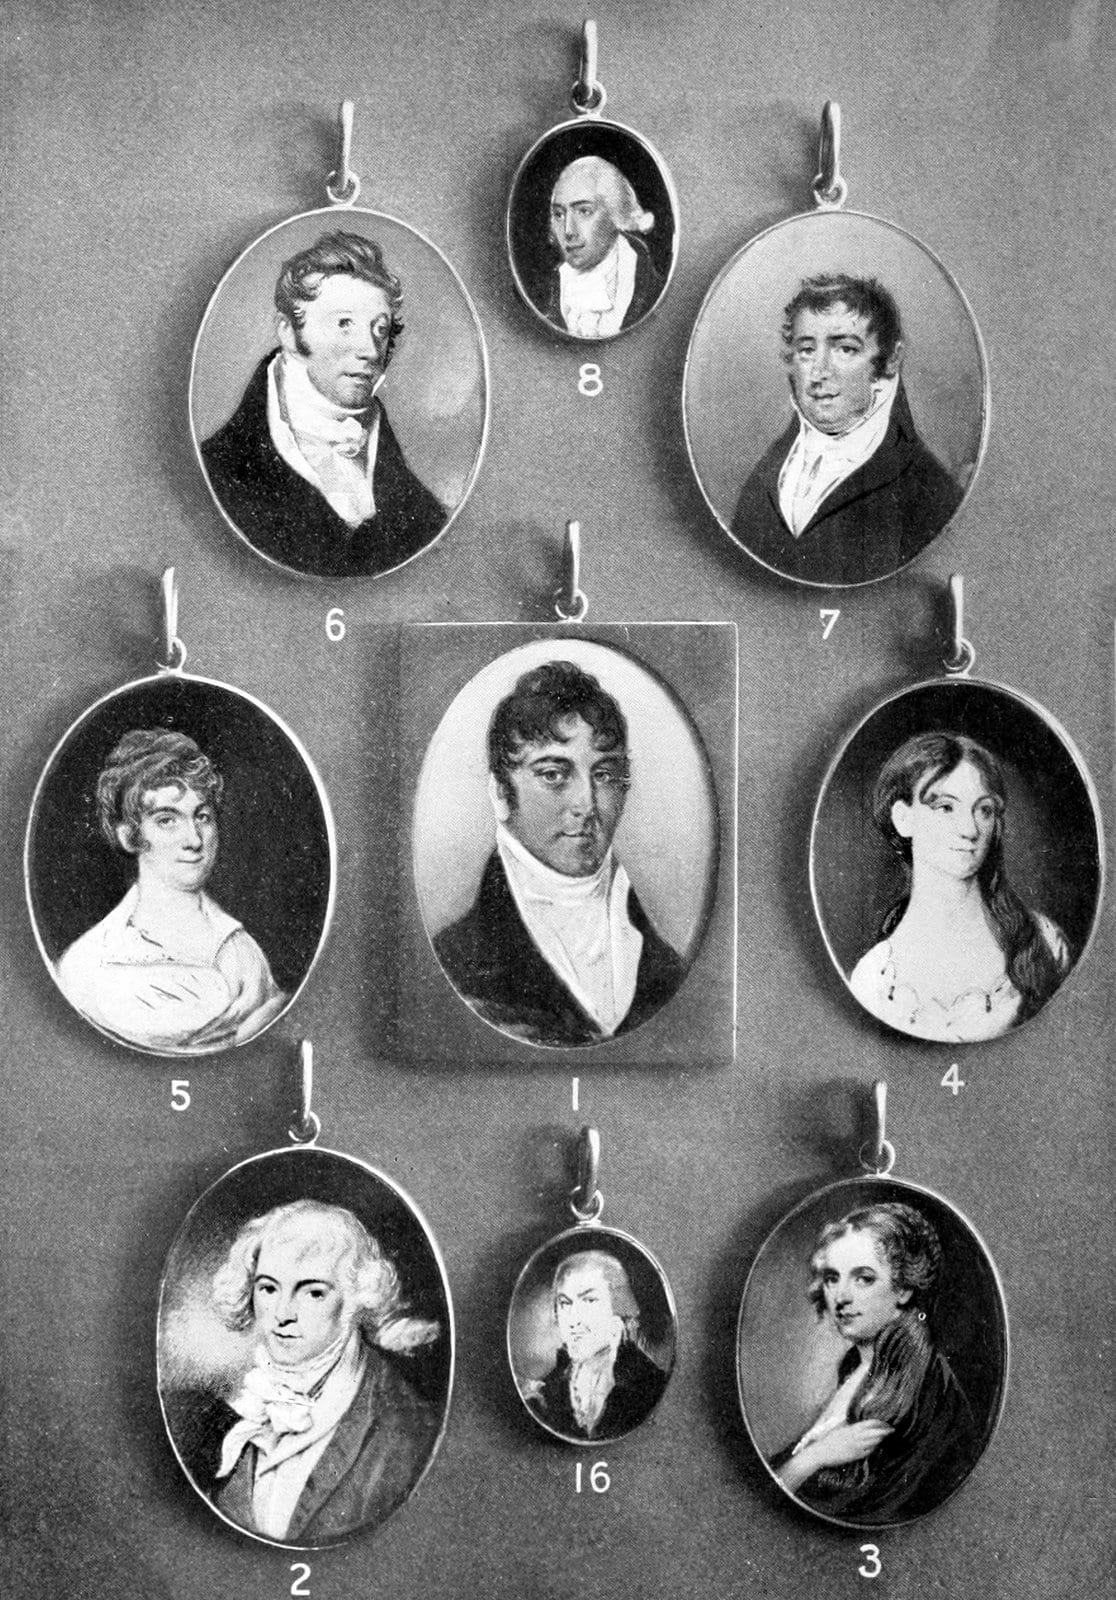 Early American portrait miniatures by William Dunlap 1820s (1)